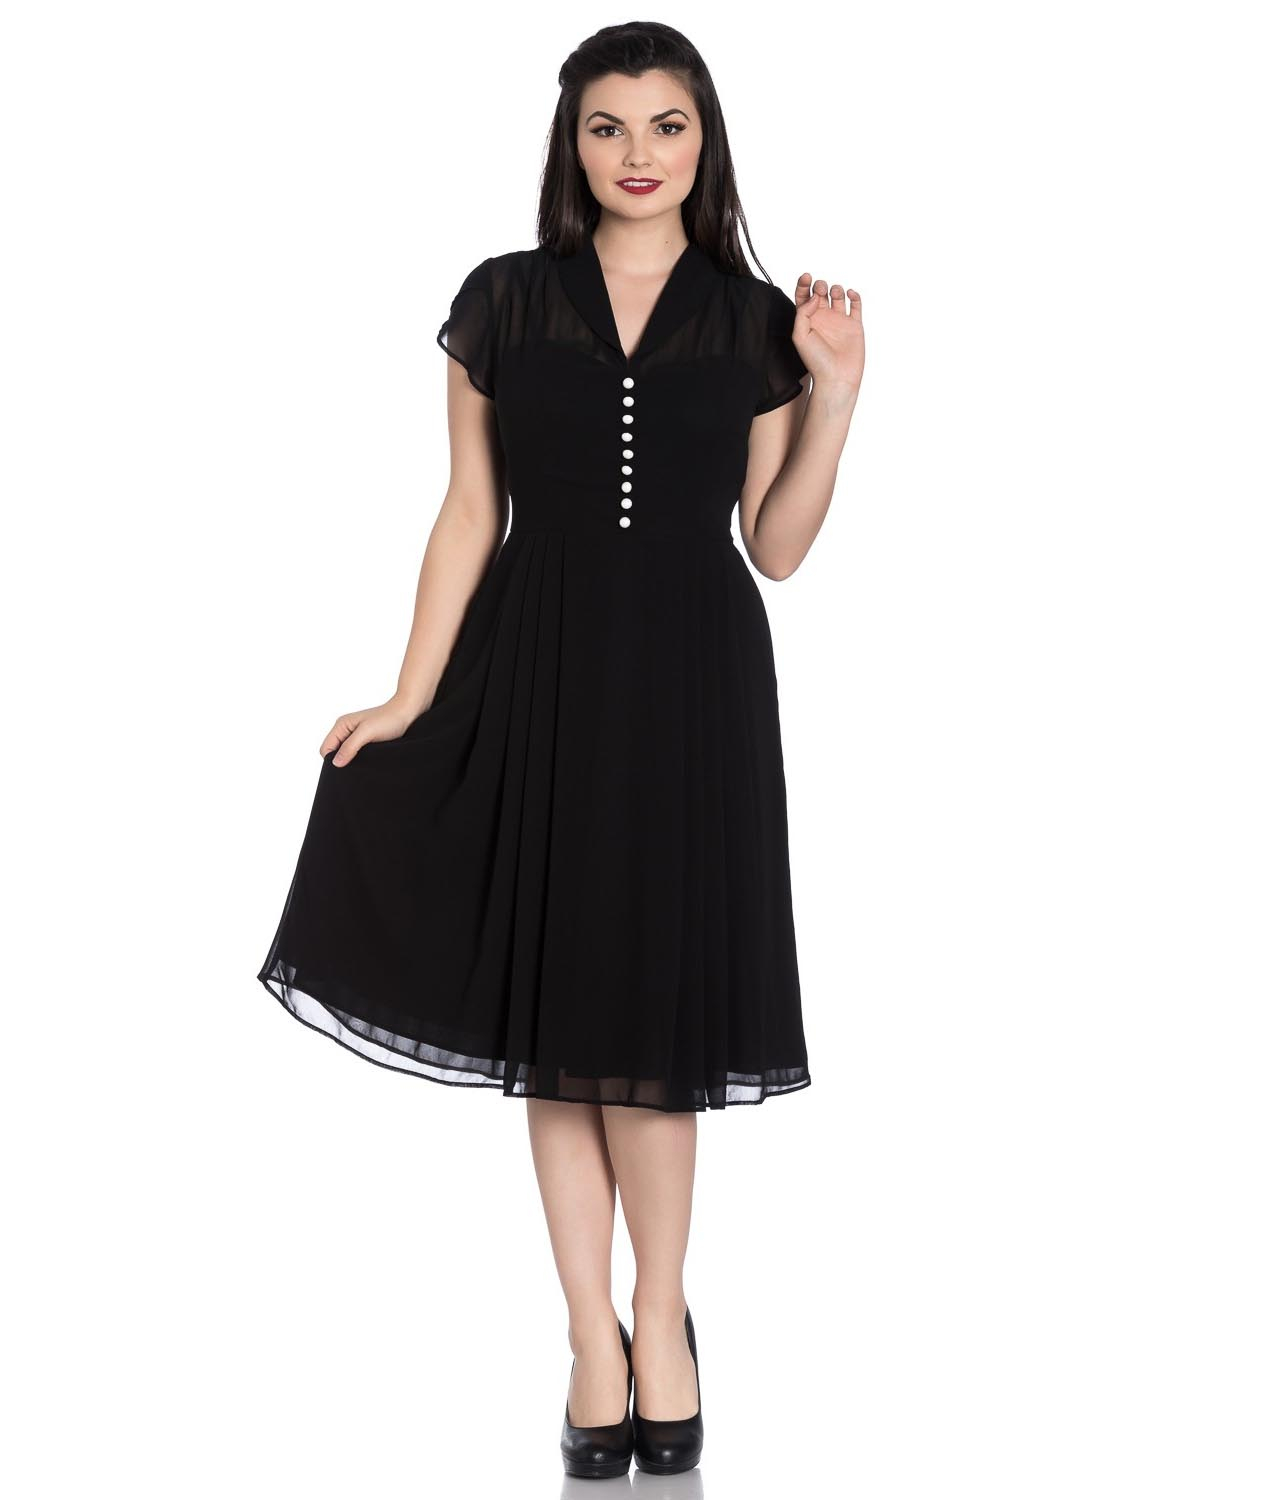 Hell-Bunny-40s-50s-Elegant-Pin-Up-Dress-PAIGE-Black-Chiffon-All-Sizes thumbnail 7